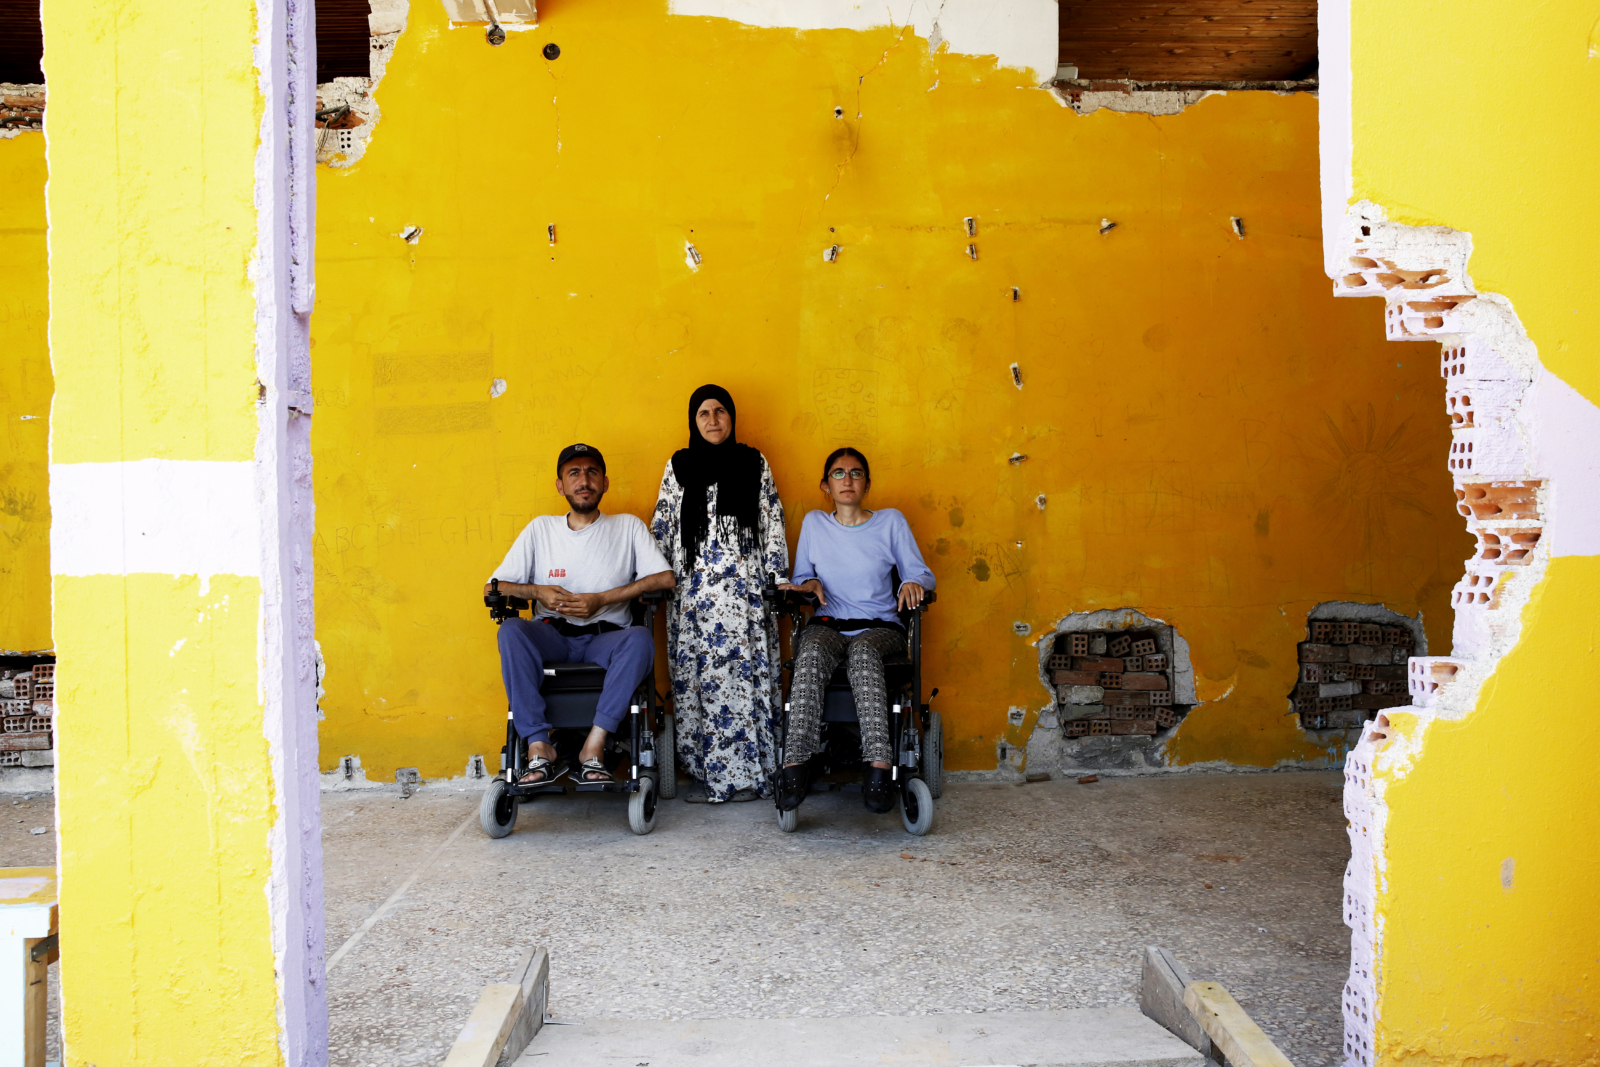 Fleeing Syria as a refugee is tough. Now imagine doing it in a wheelchair